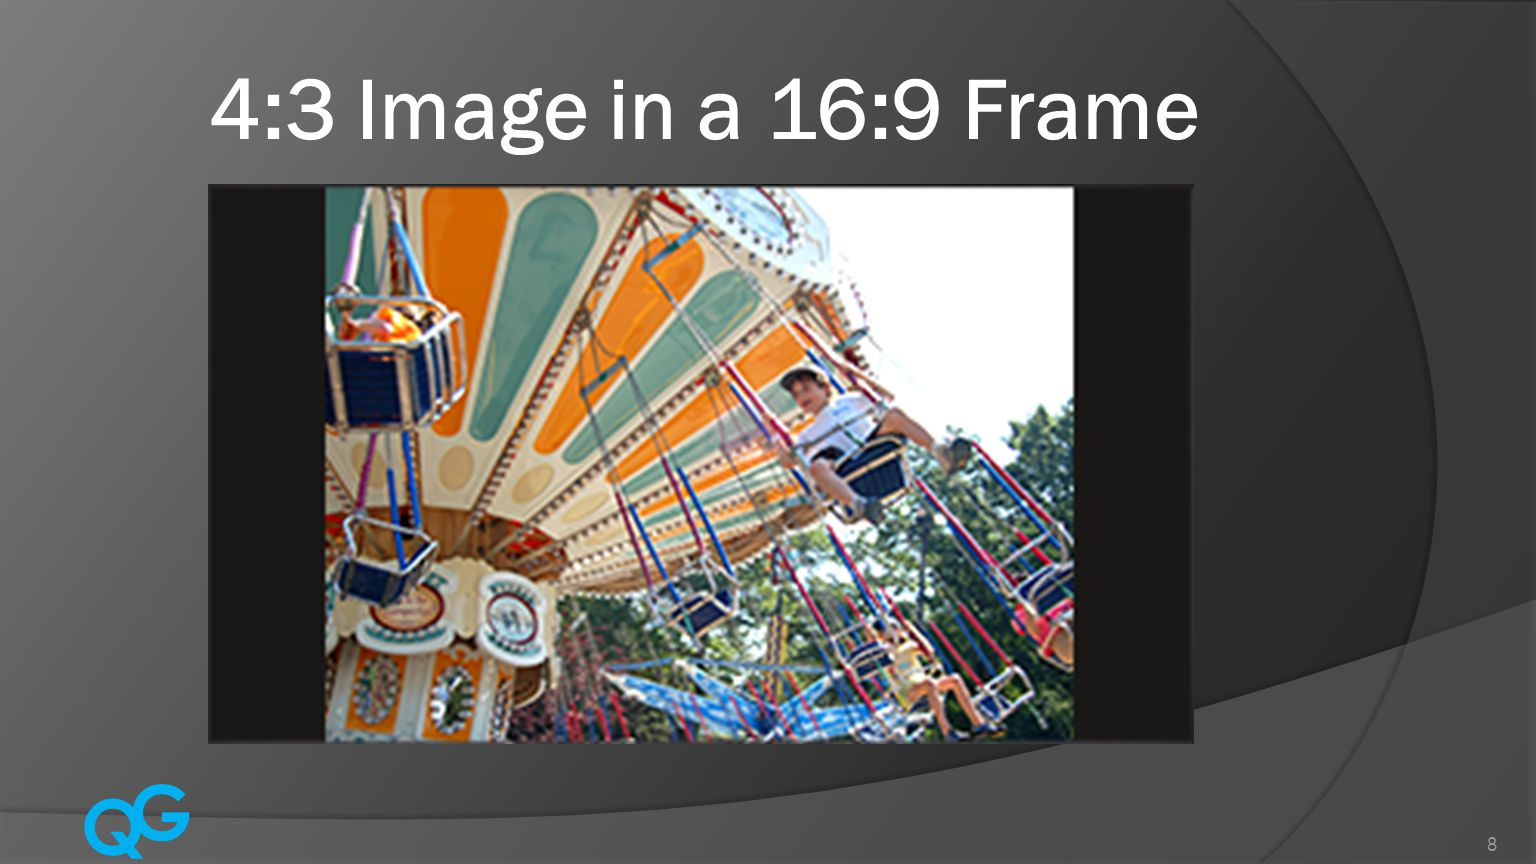 Q G 8 4:3 Image in a 16:9 Frame